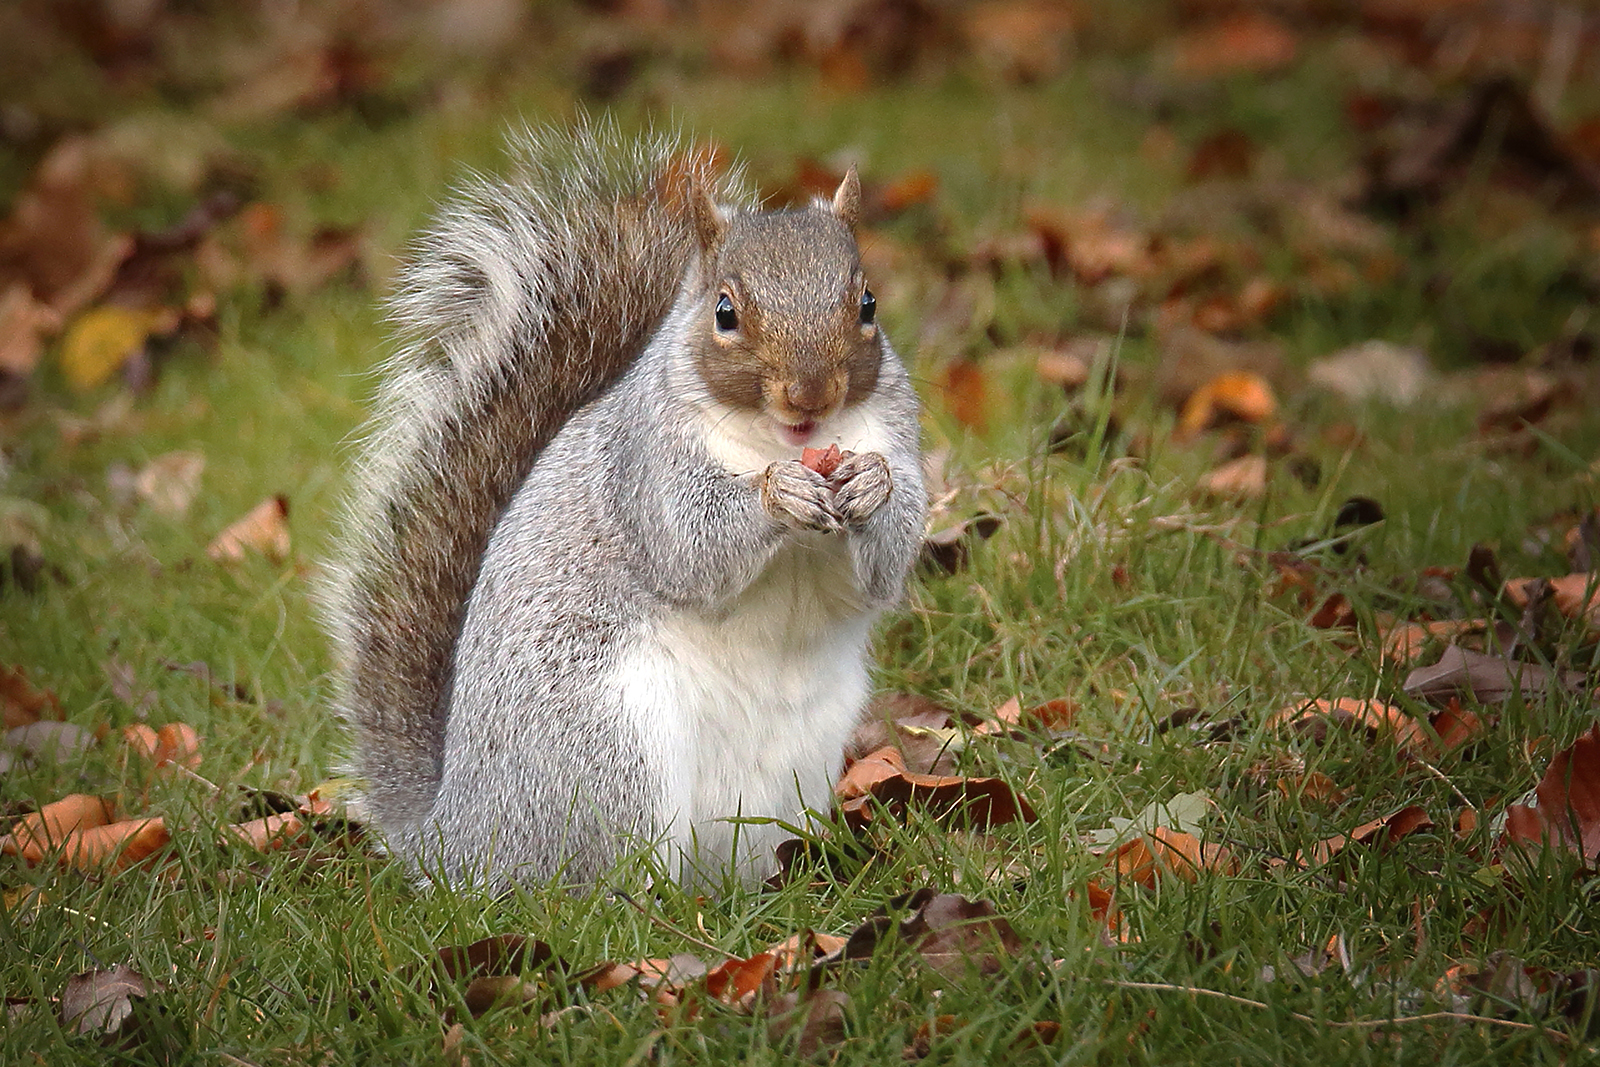 Graeme Blumire_Nutty Squirrel_None